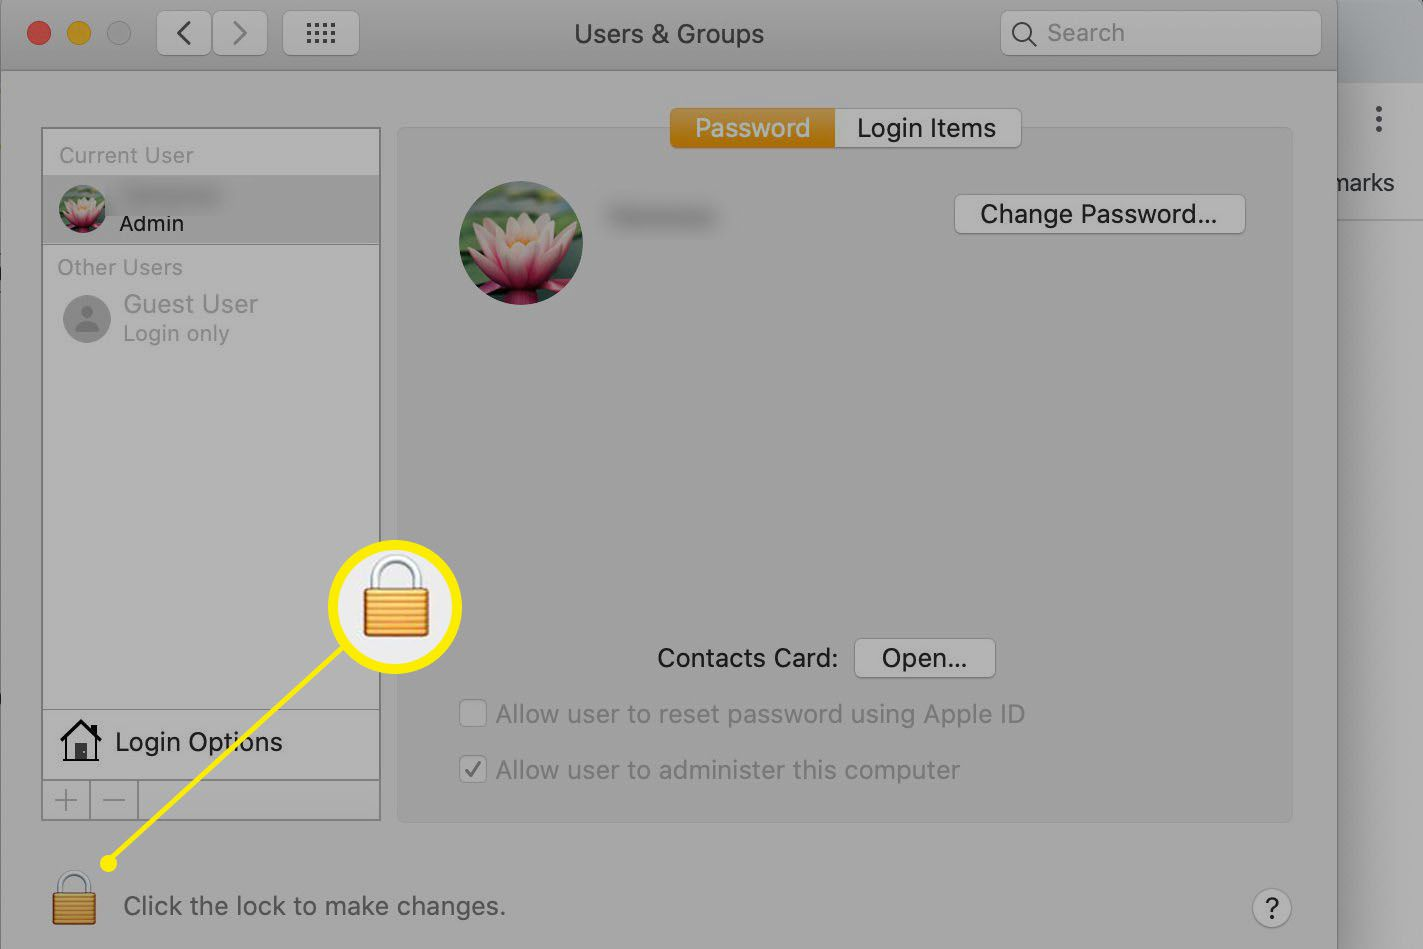 macOS System Preferences > Password